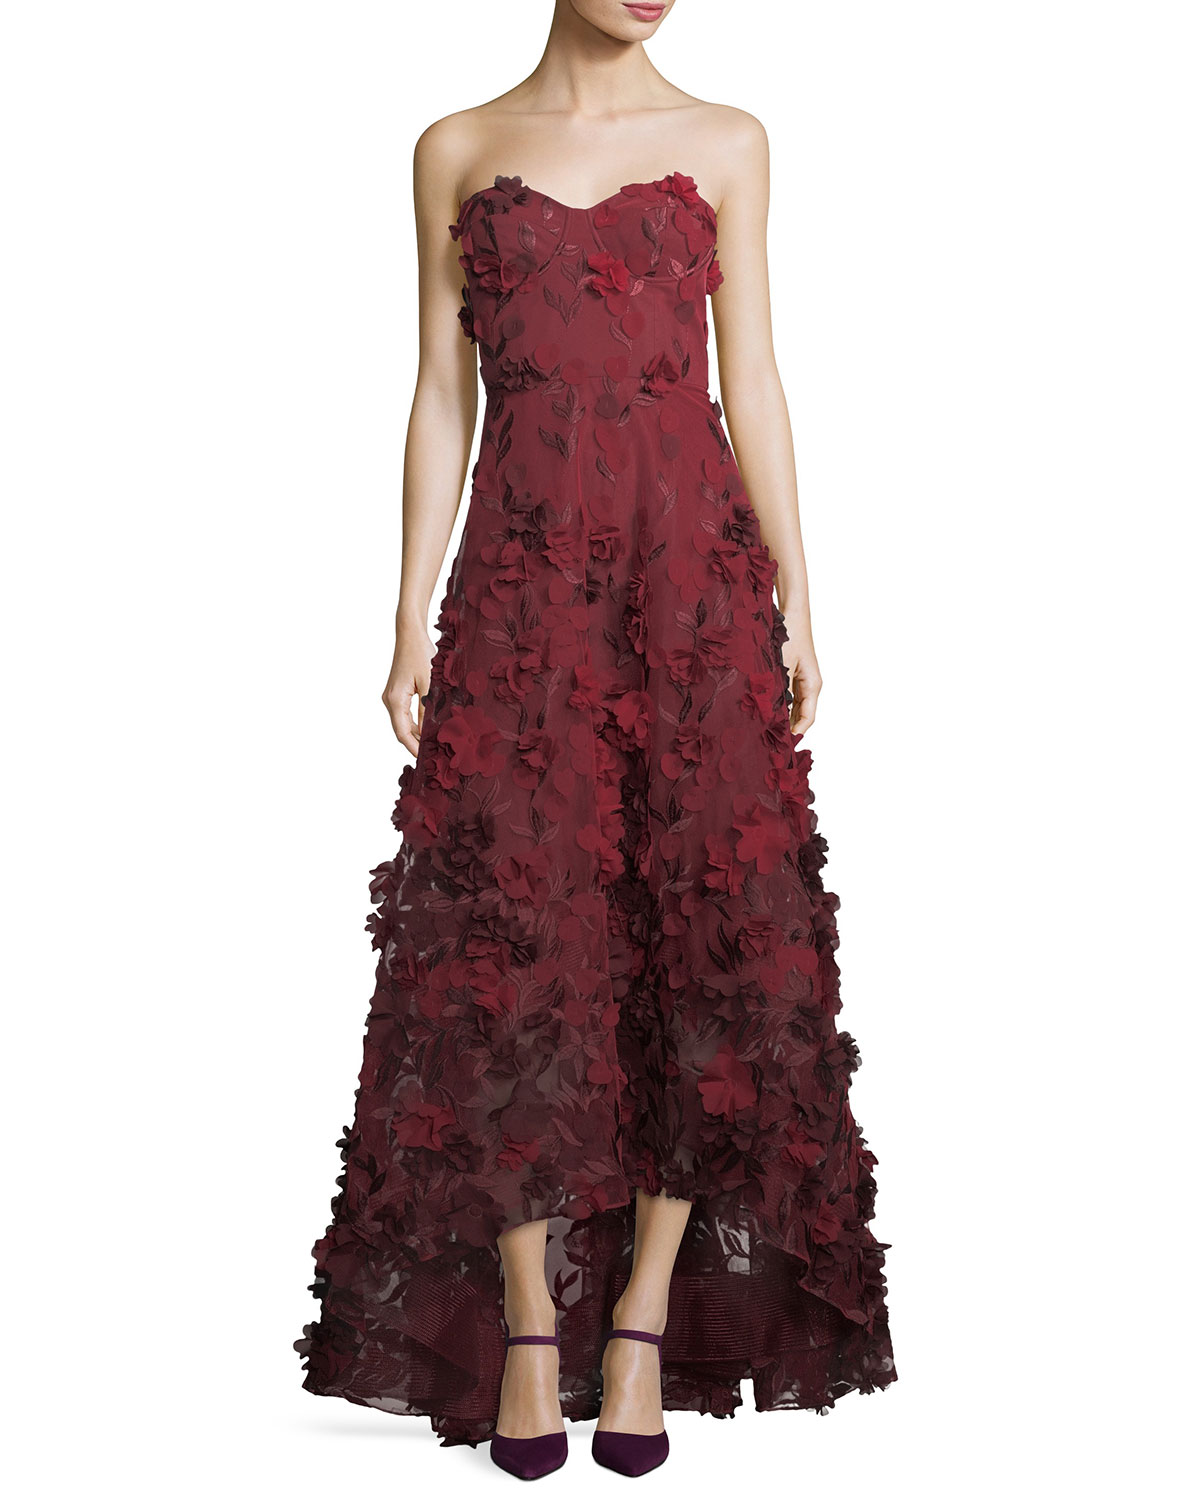 44a179d6a Marchesa Notte Strapless High-Low Floral Tulle Gown